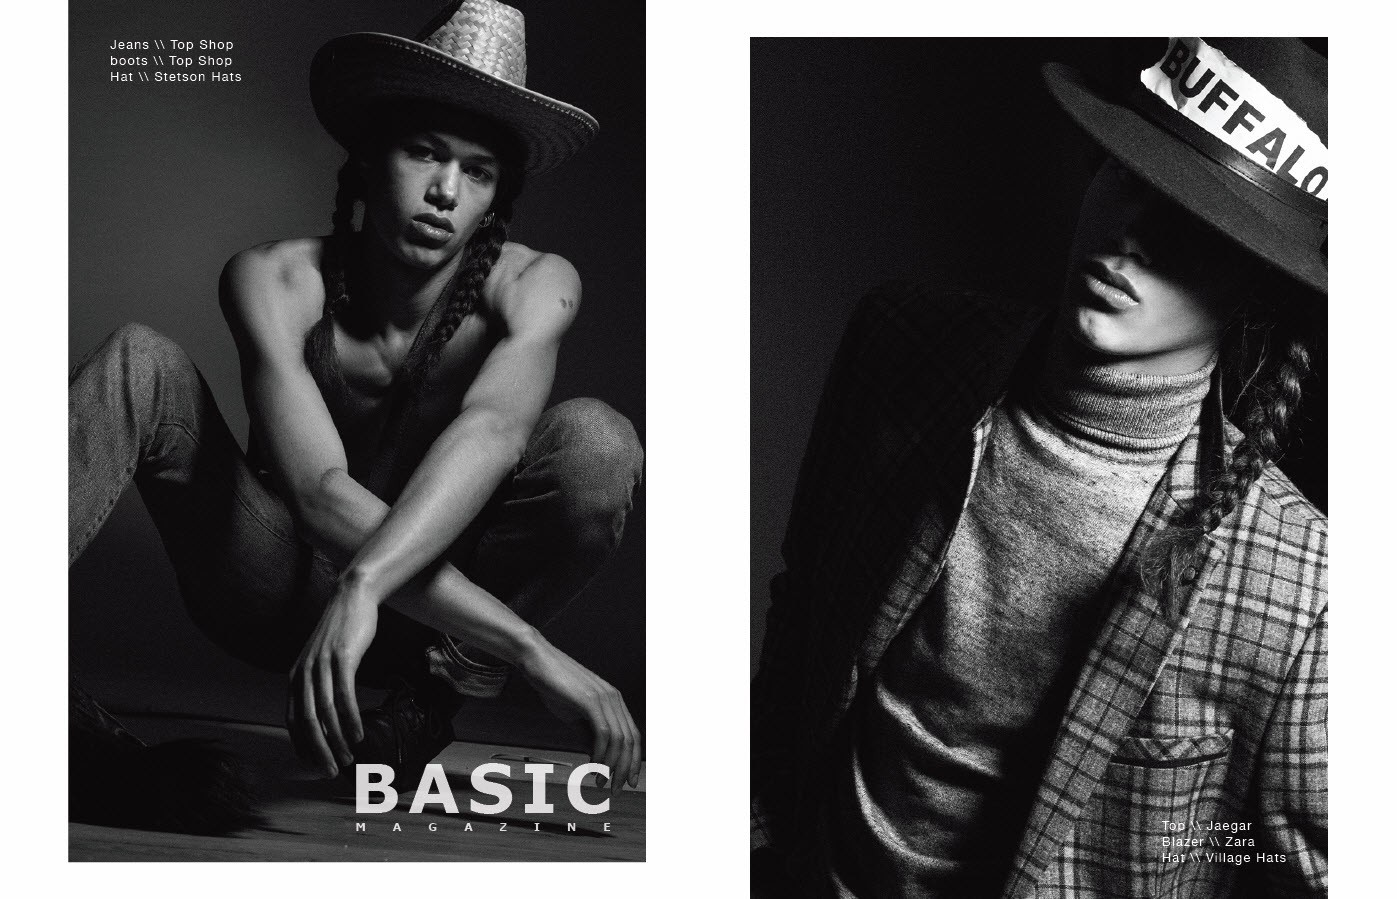 peter-warrick-basic-magazine-1